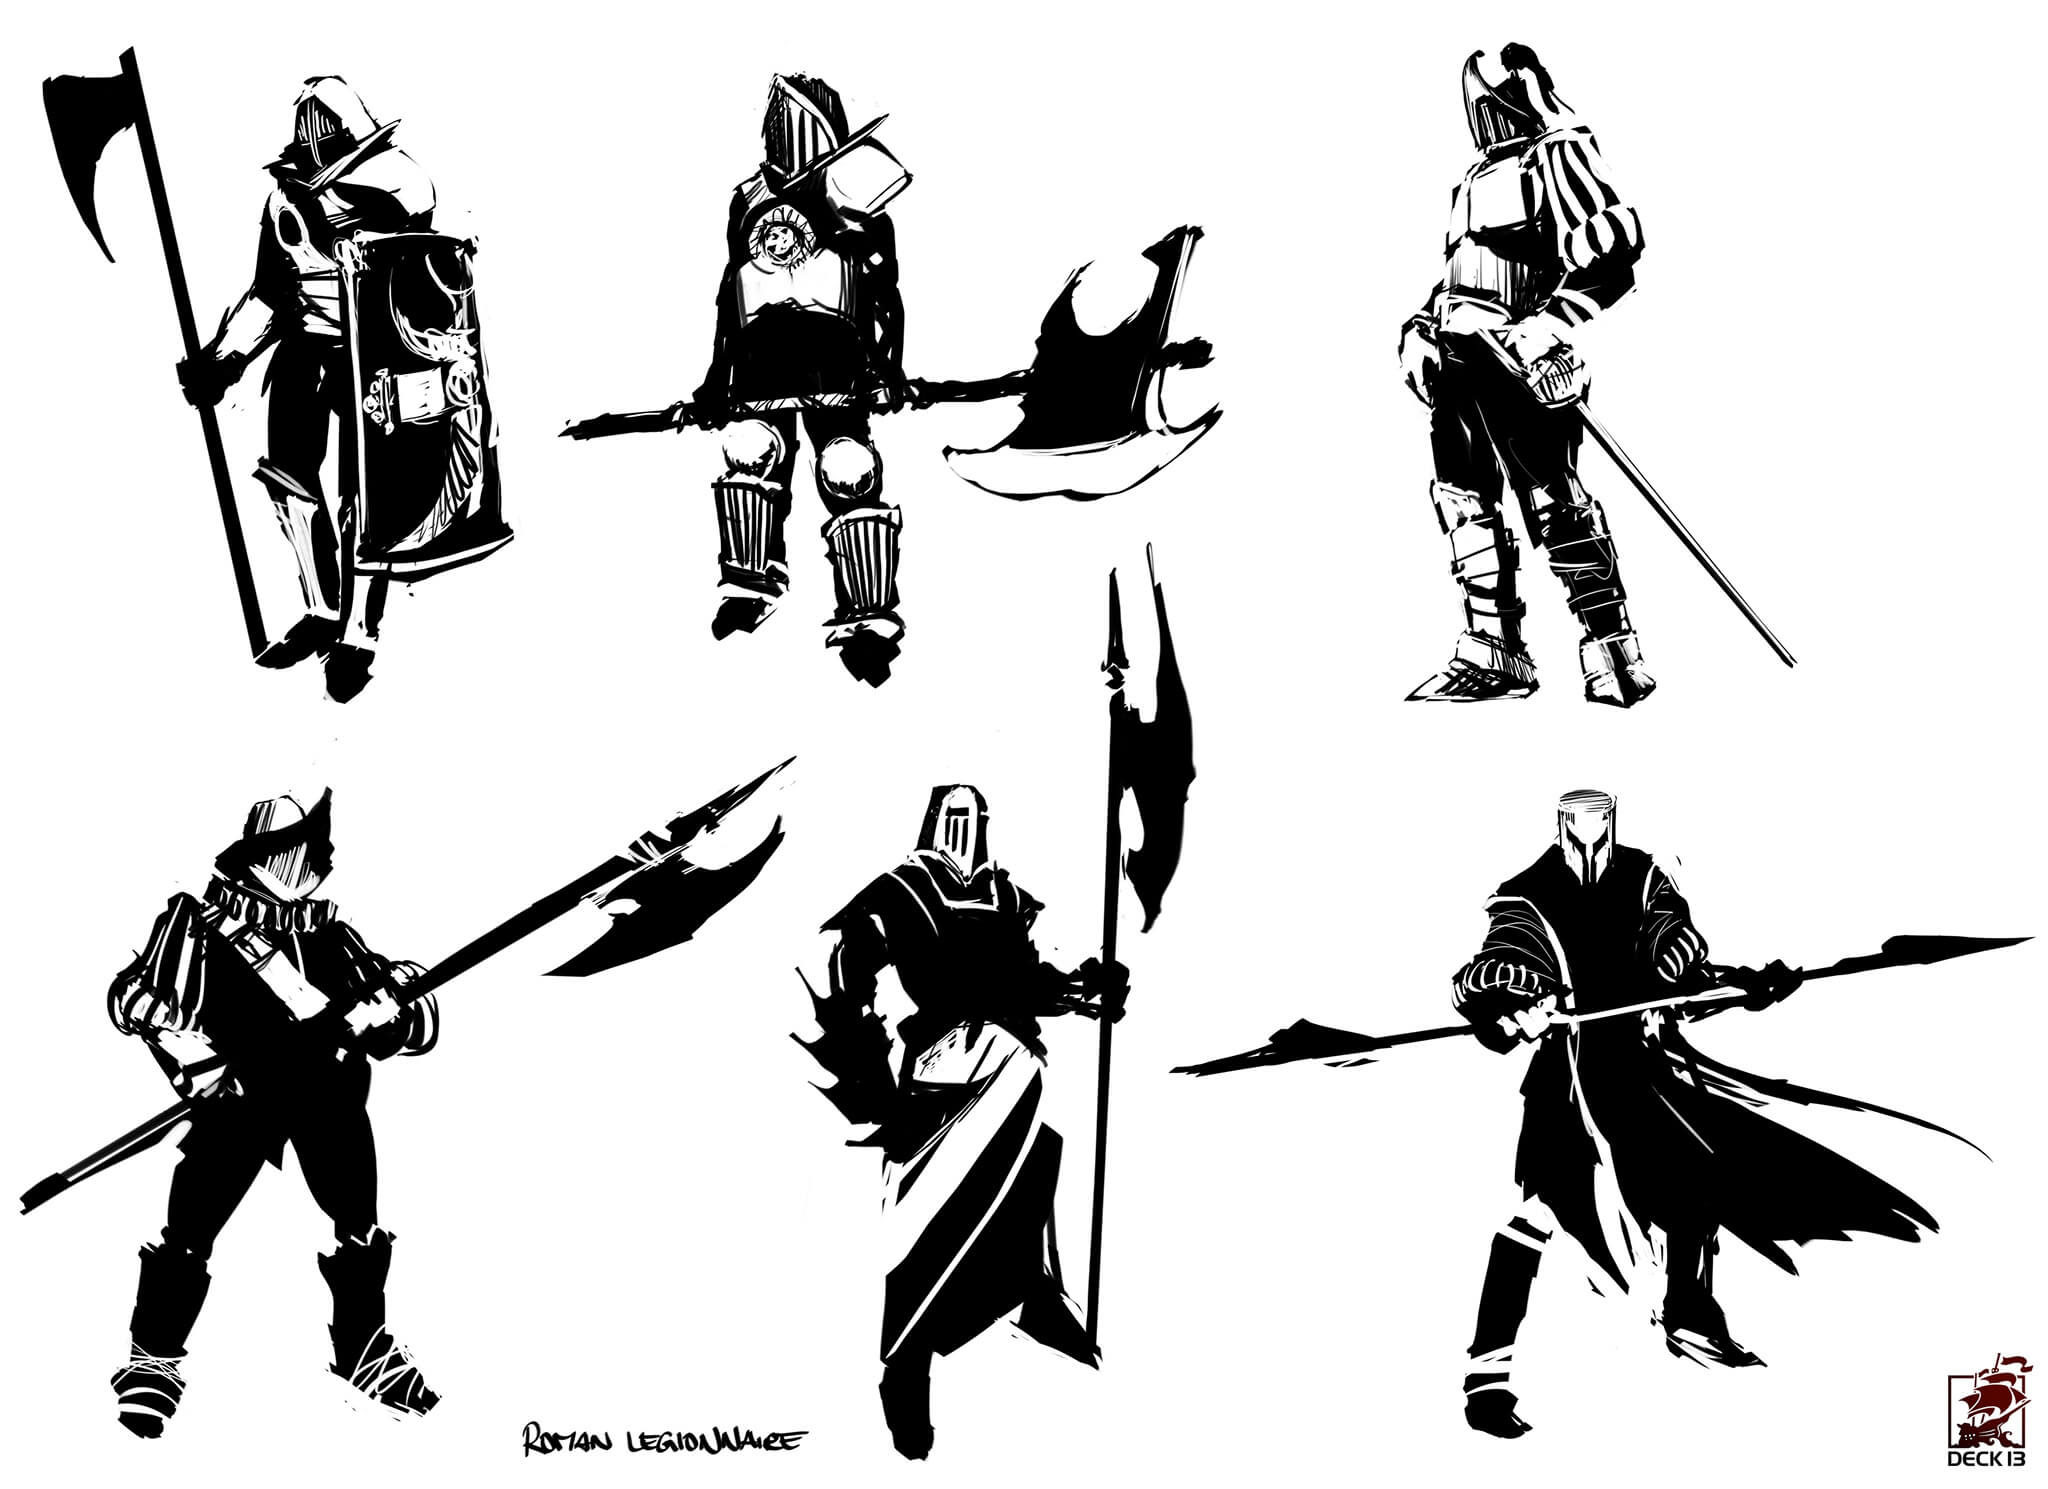 blood-knights-character-concept-art-felix-haas-roman_legionnaire_iteration_001